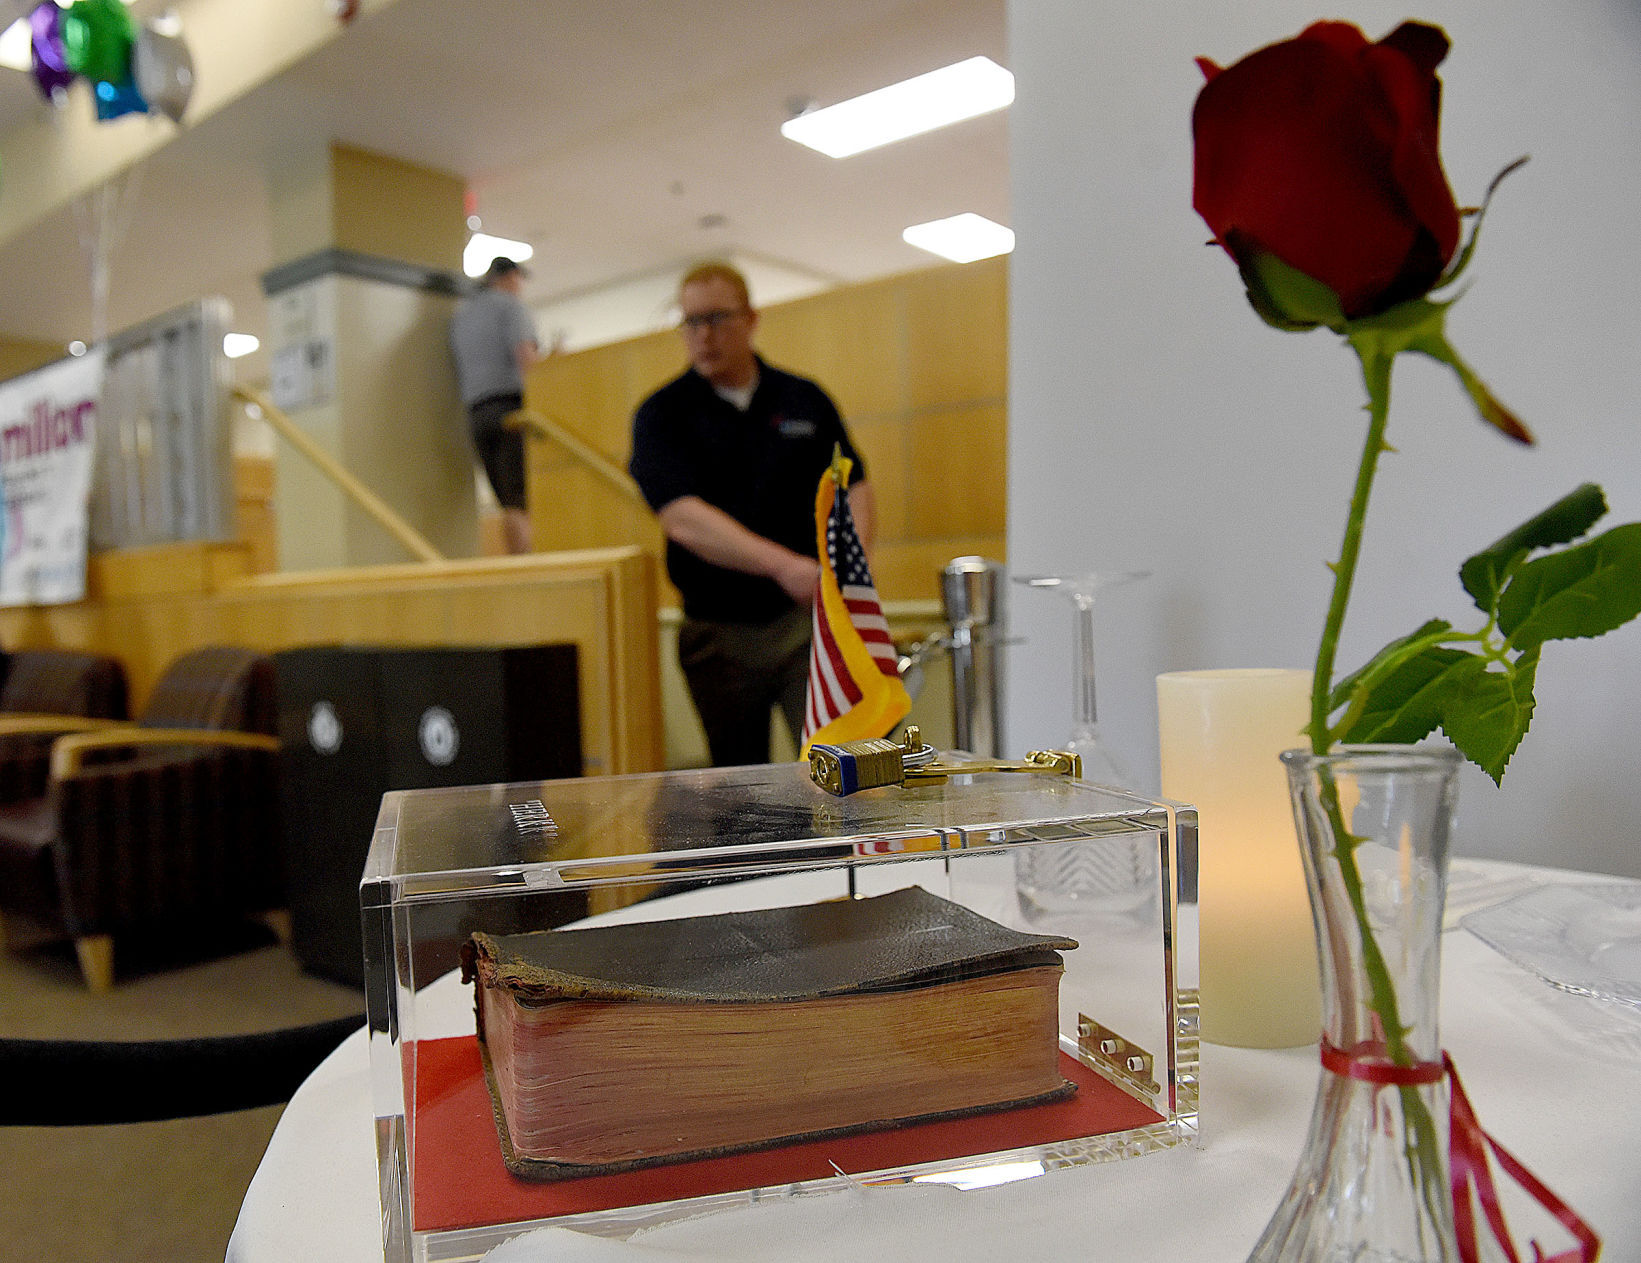 Replacing Bible with multi-religion Book of Faith at Manchester VA display meets resistance